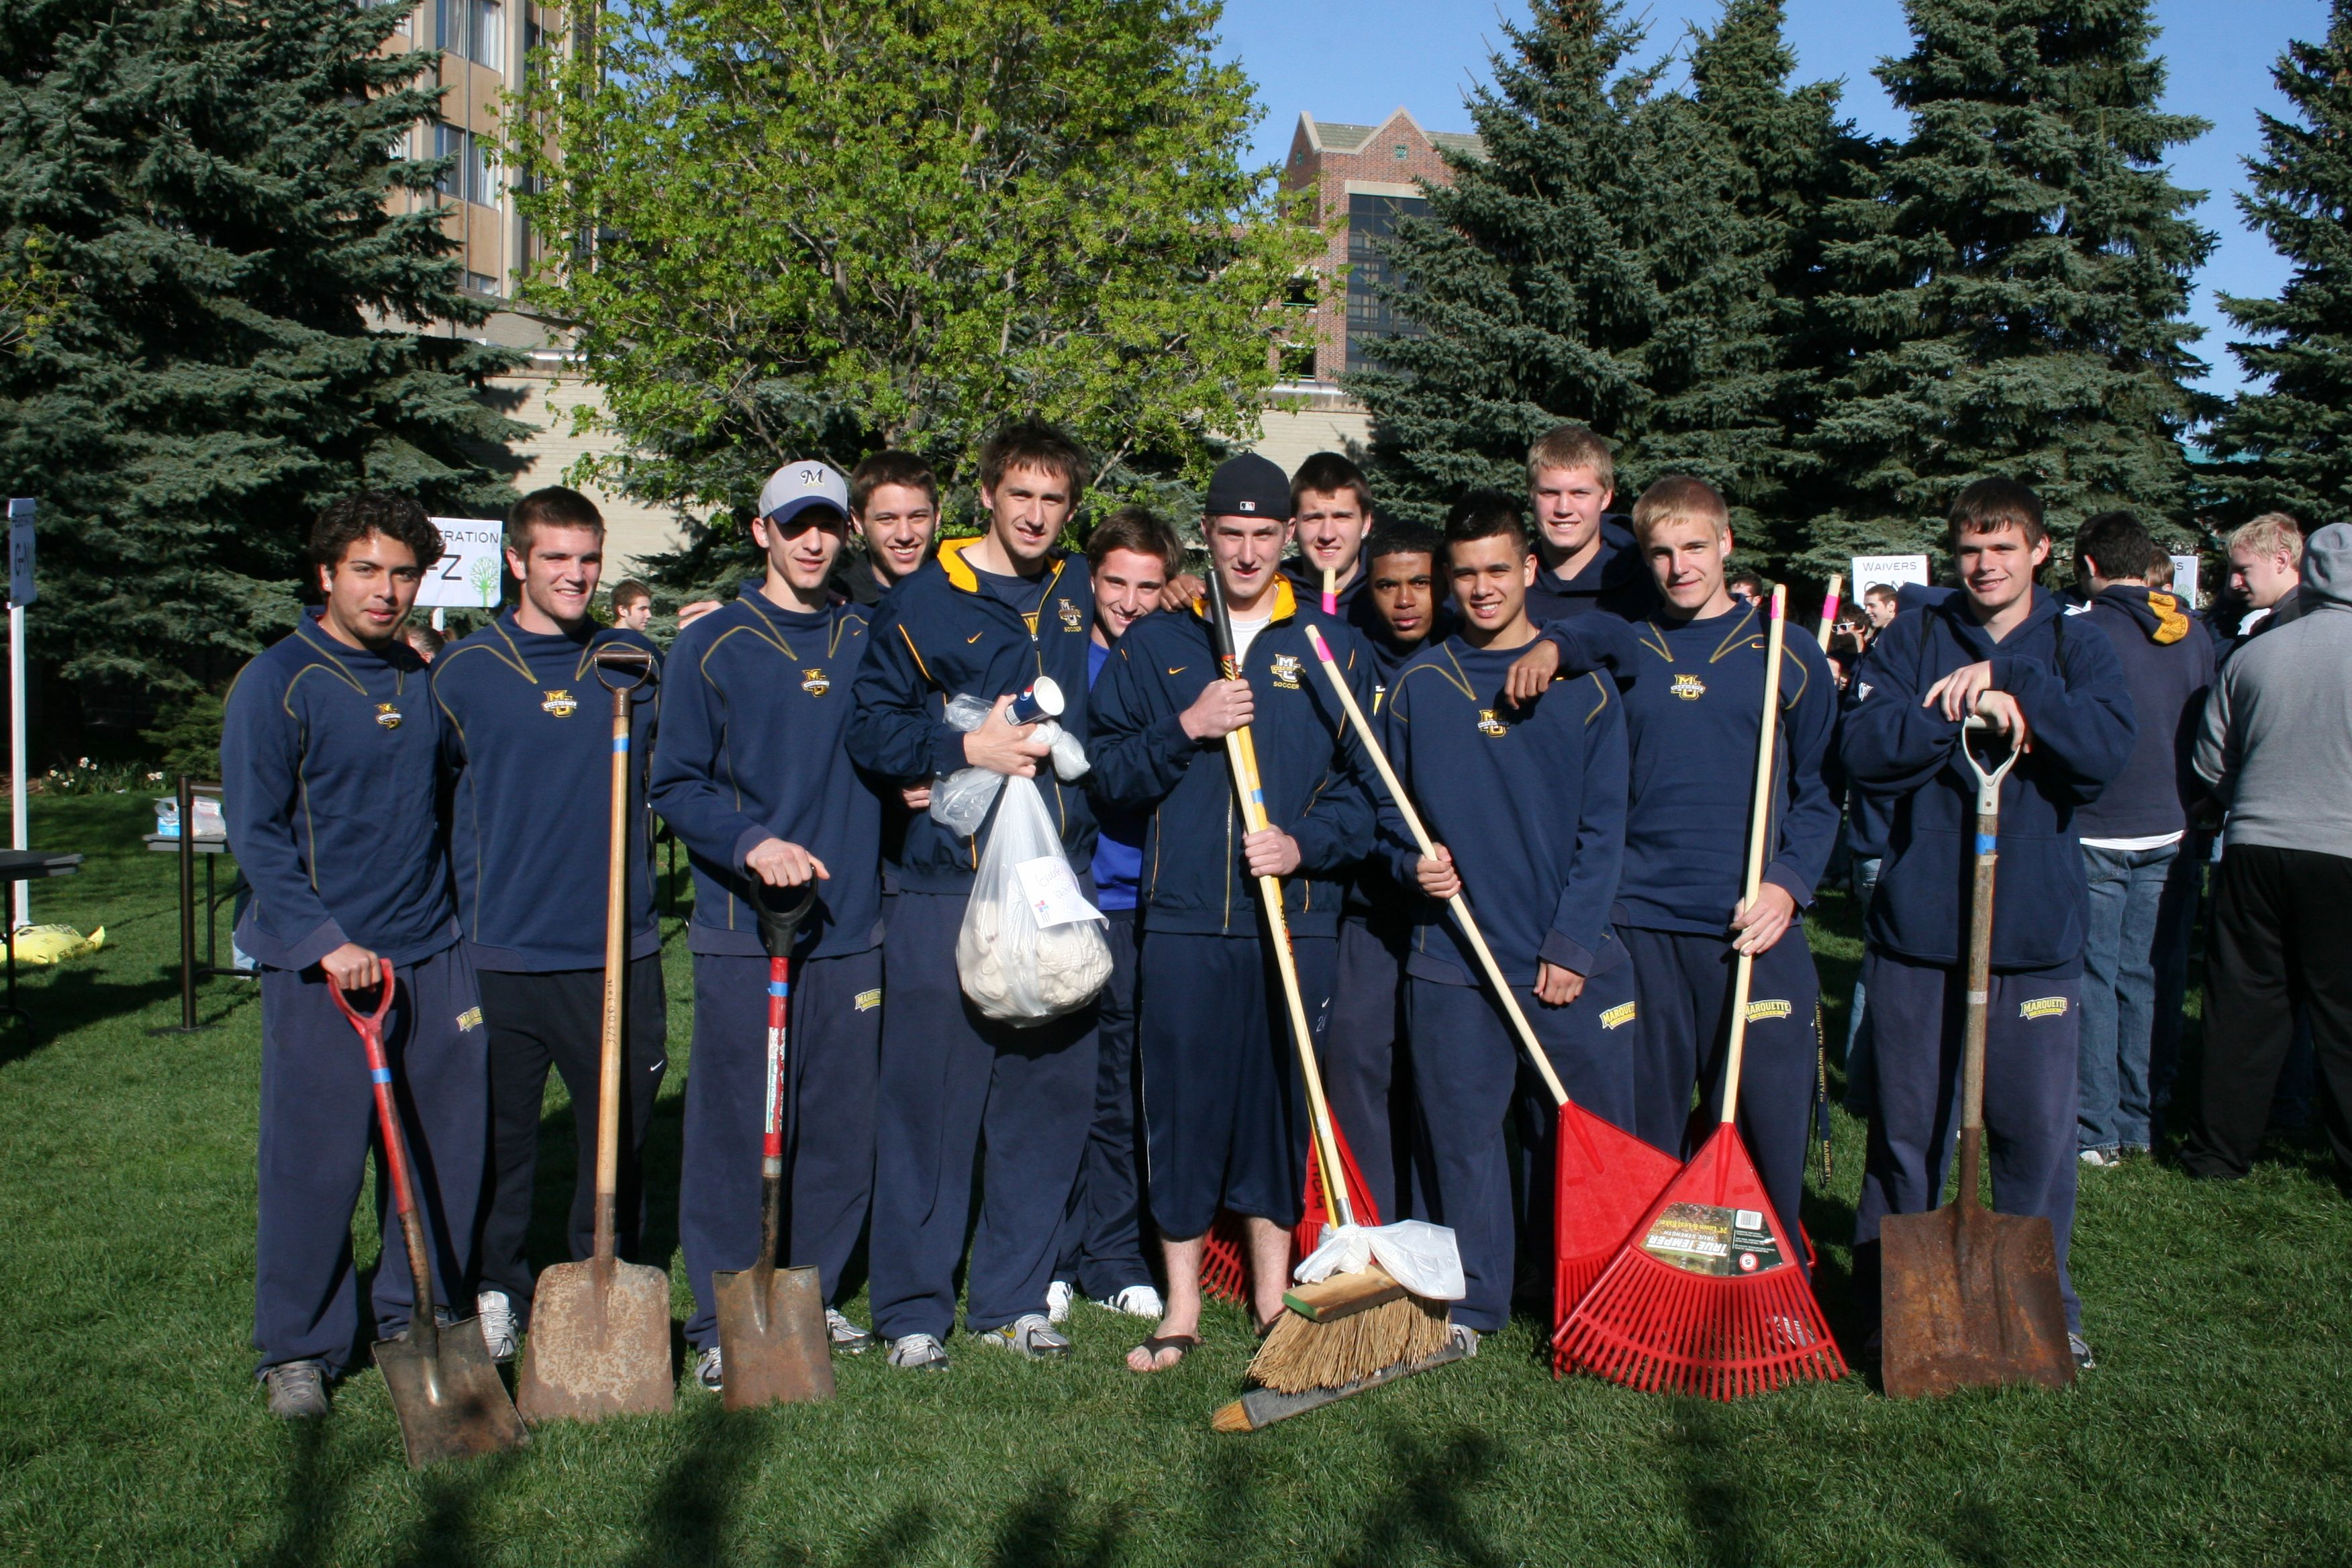 A variety of student organizations participate in Hunger Clean-Up each year, including MU Athletic teams like the Men's Soccer team.